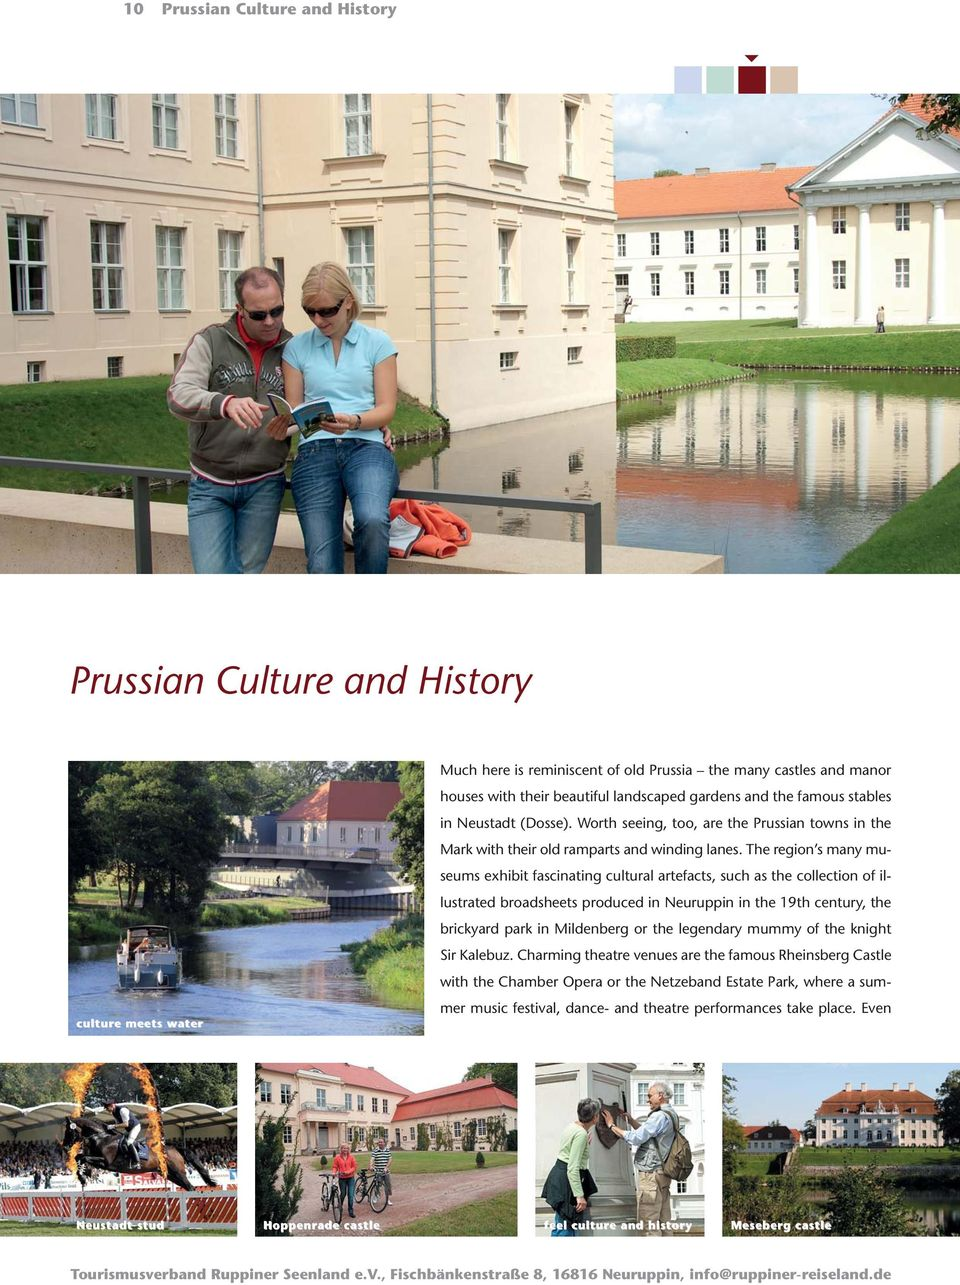 The region s many museums exhibit fascinating cultural artefacts, such as the collection of illustrated broadsheets produced in Neuruppin in the 19th century, the brickyard park in Mildenberg or the